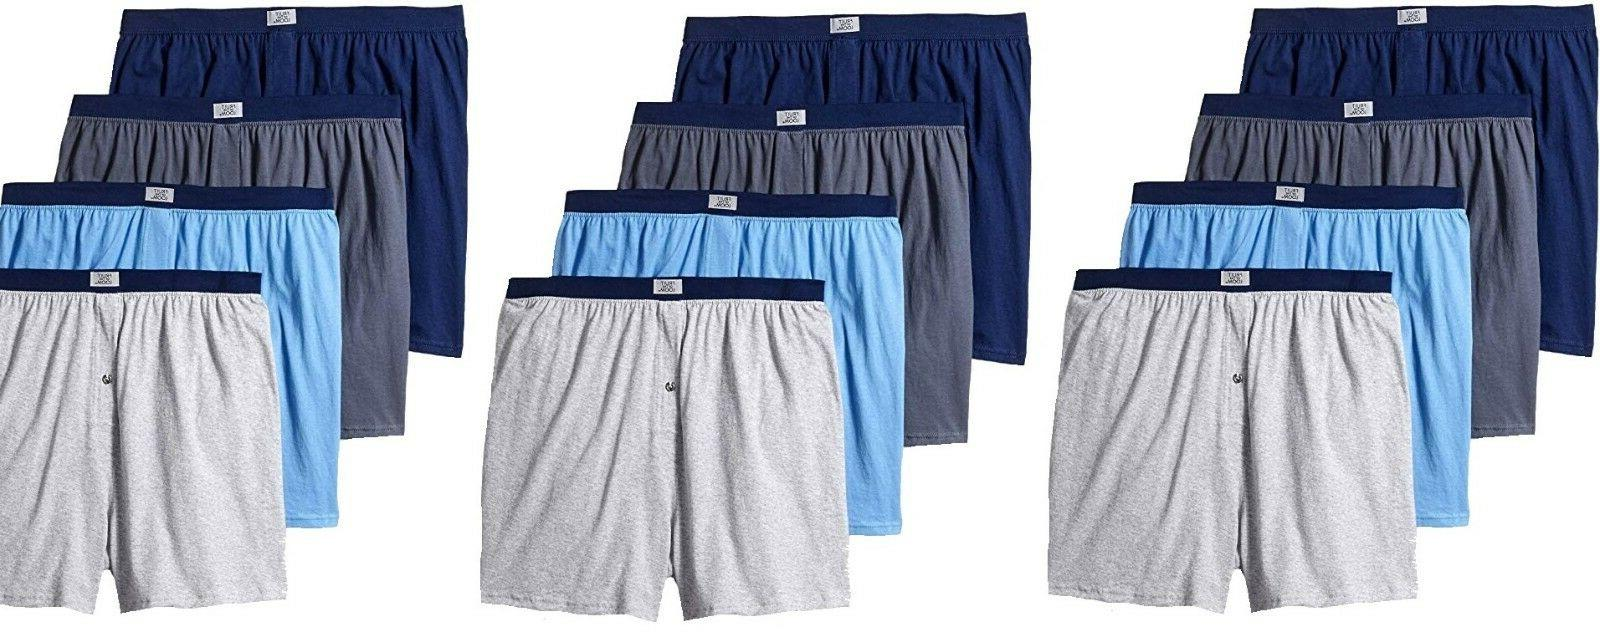 Fruit Of The Loom 12 Pack Men Knit Boxer, ITEM # 4P540X